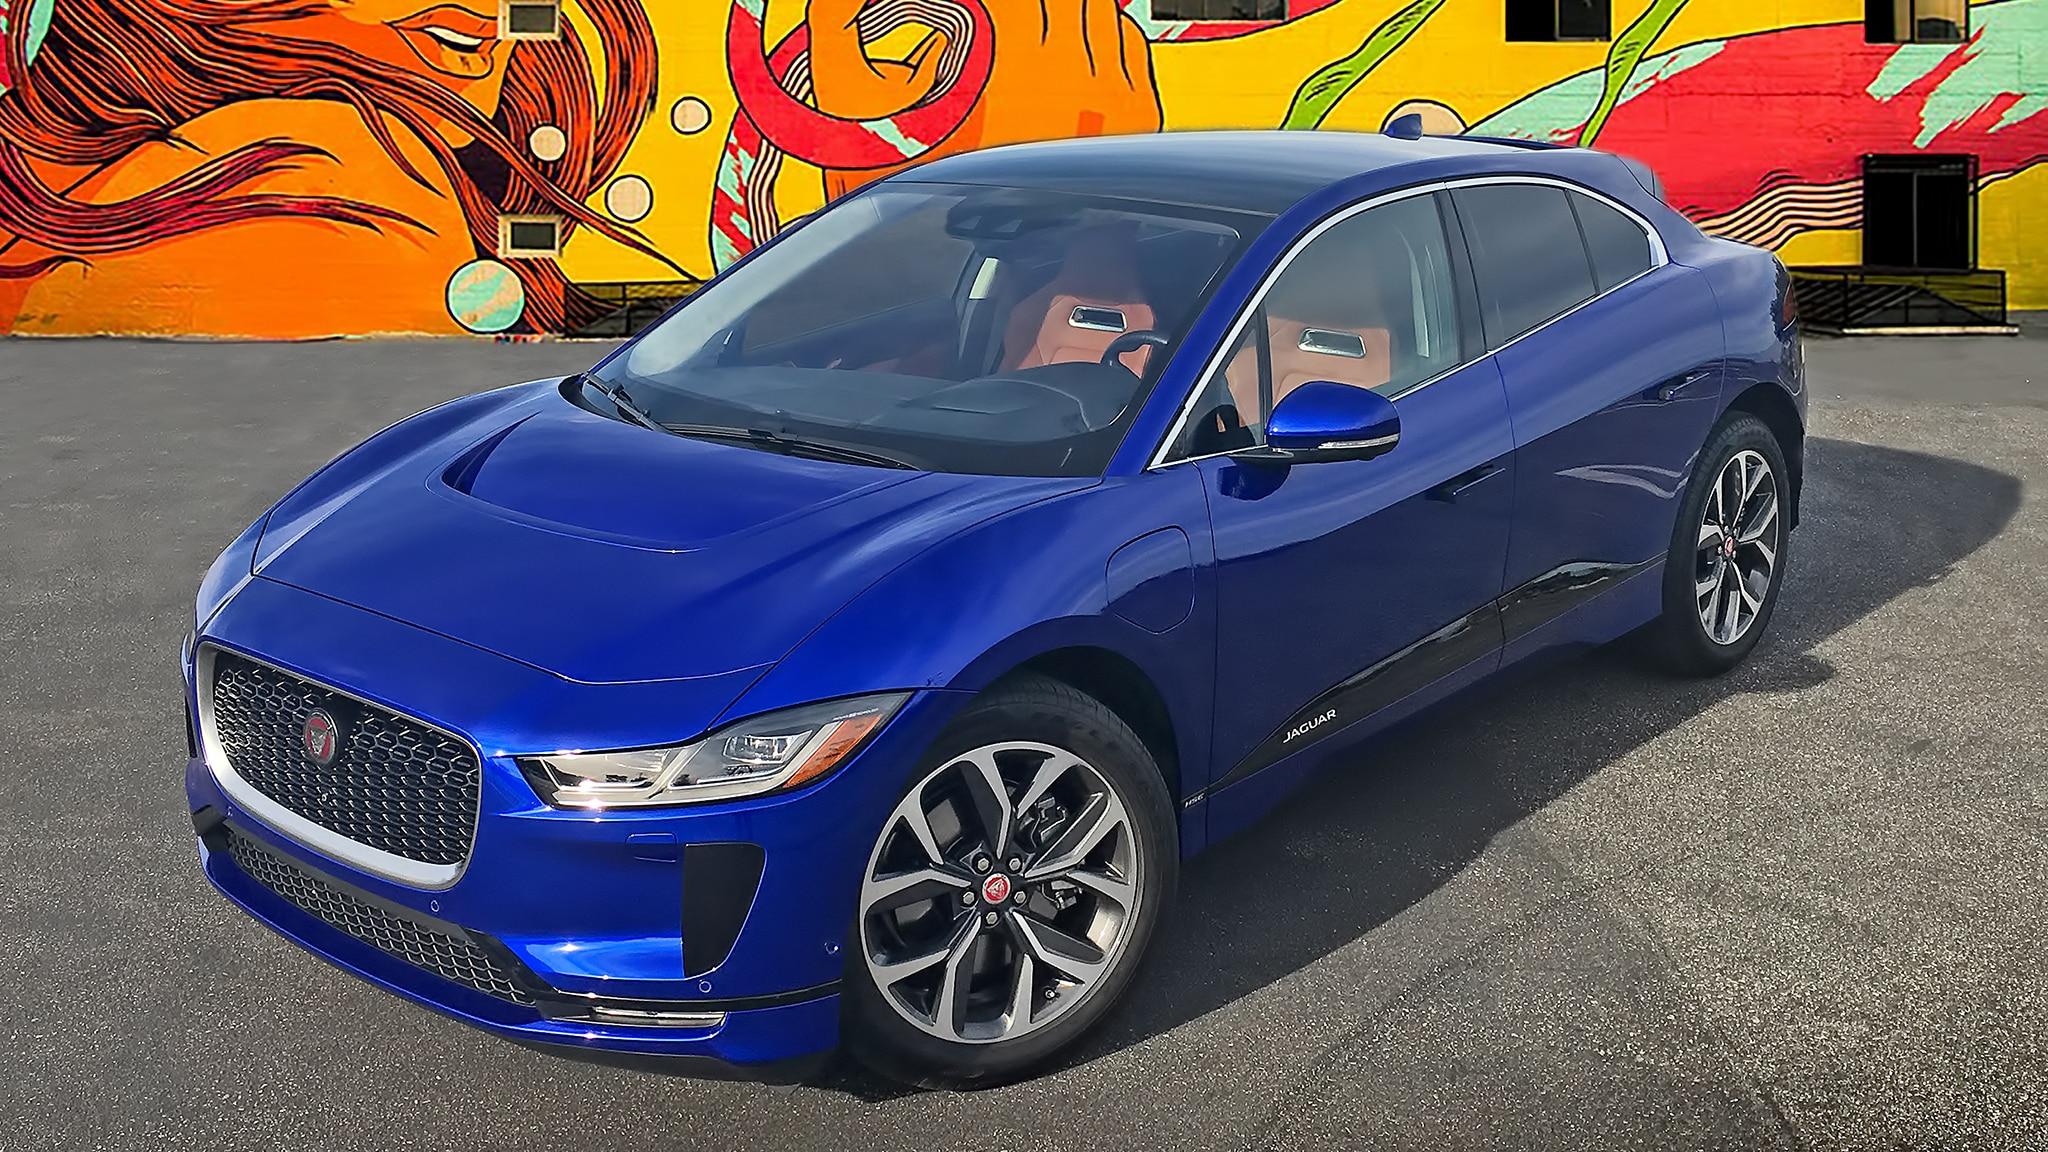 2019 Jaguar I-Pace EV: Design, Specs, Mileage, Price >> 2019 Jaguar I Pace Ev400 Is Unlike Any Jag Ever Made